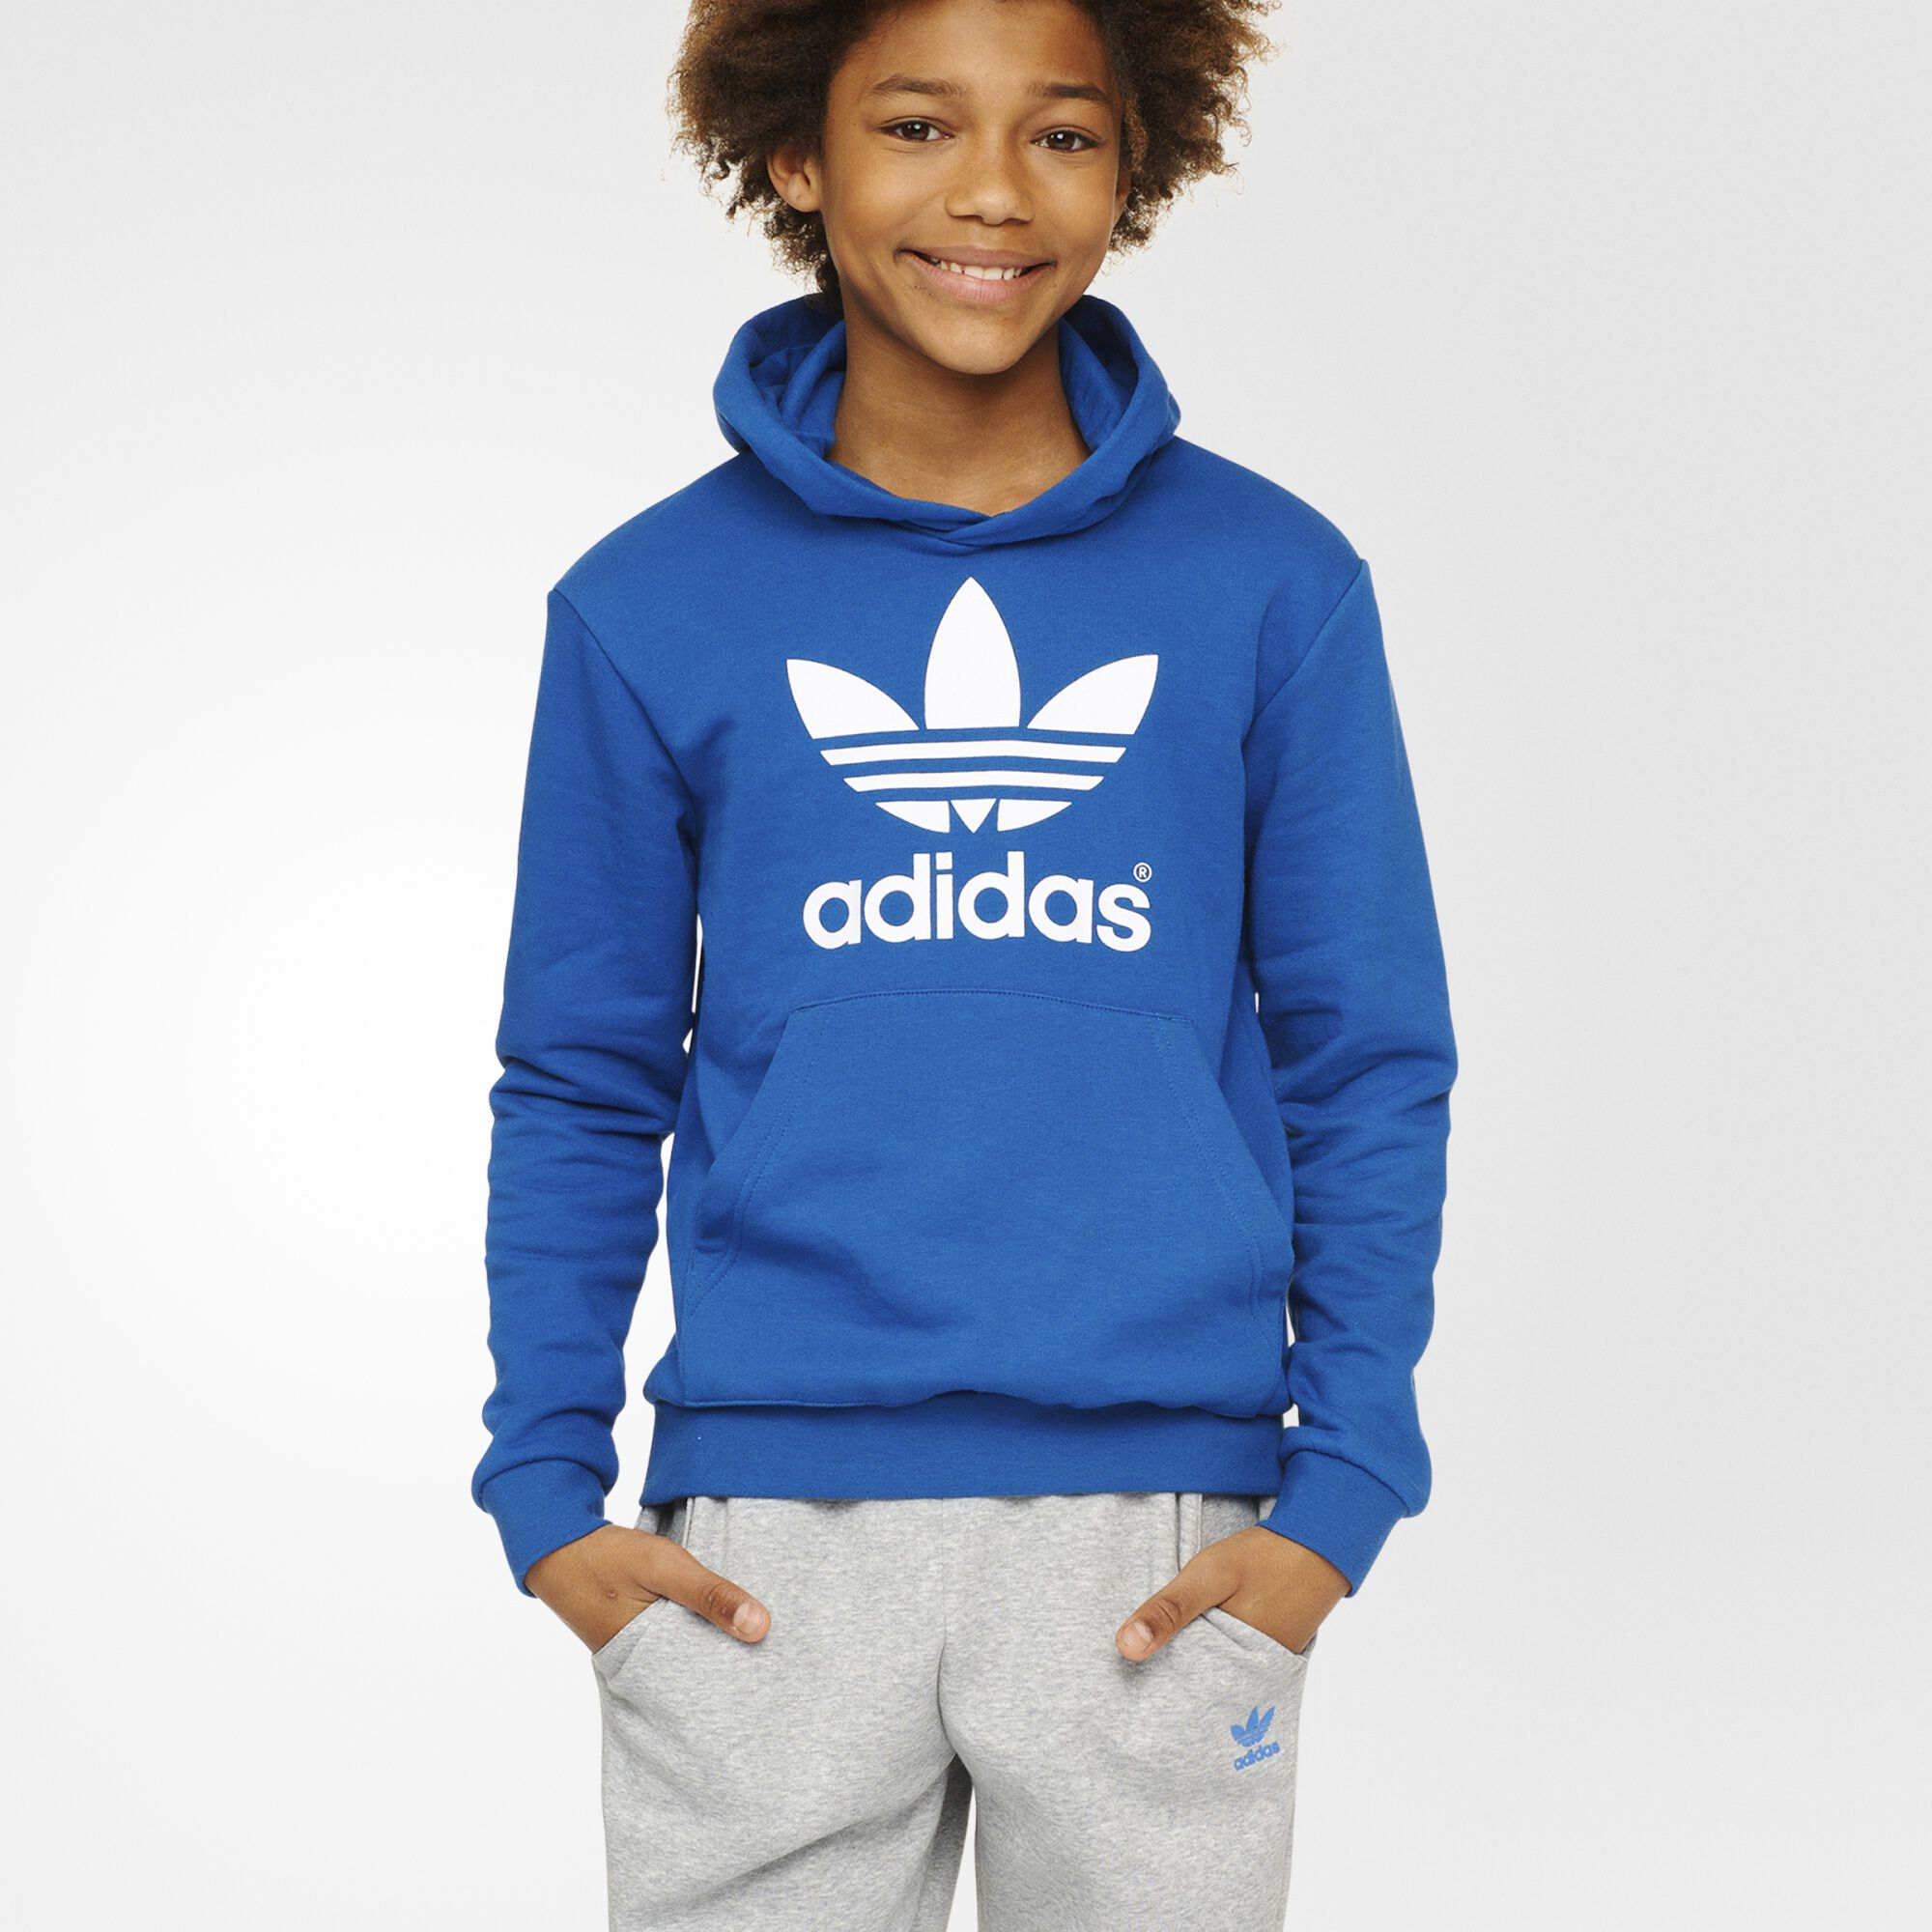 Adidas Kids Apparel Adidas Online Shop - Free Shipping Sitewide | Adidas World